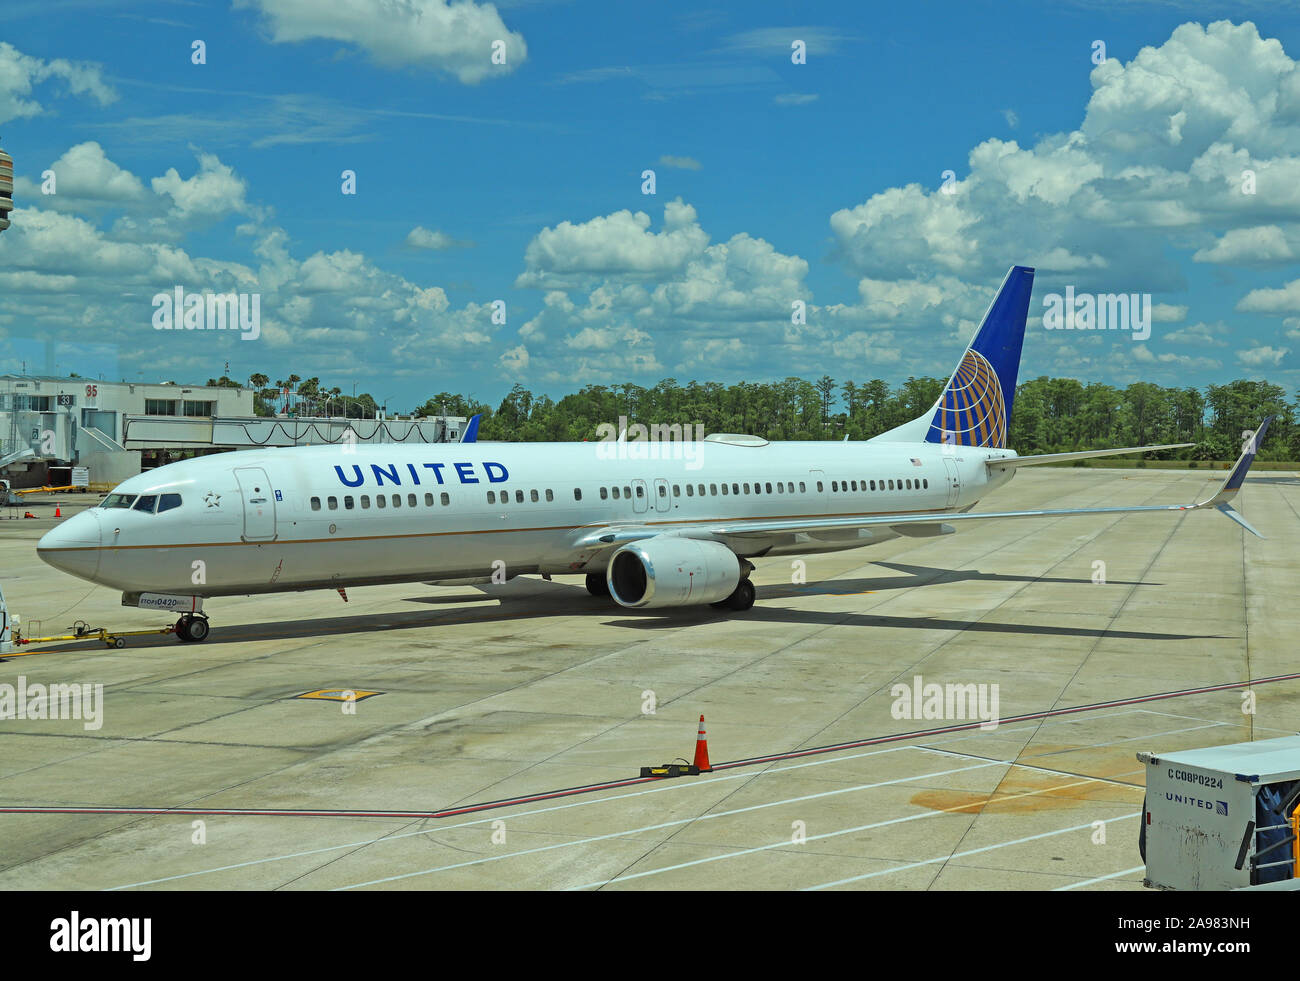 United Airlines Boeing 737 900 N37420 Being Pushed Back On The Apron Note There Is No Registration On The Side Of The Aircraft Stock Photo Alamy